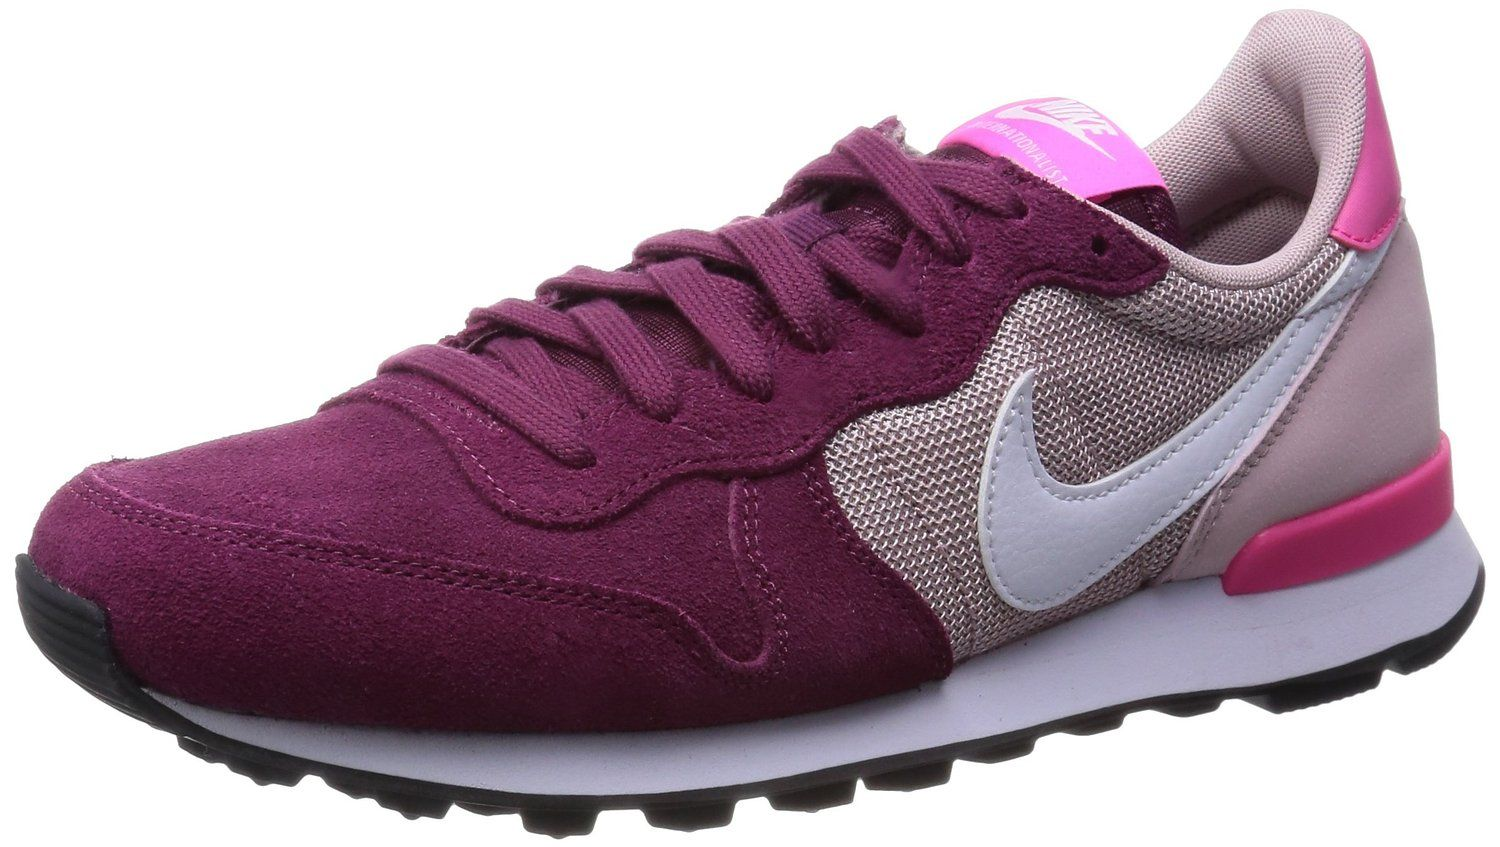 servidor Berri Masaccio  Zapatillas Nike Internationalist Burdeos 39 Granate: Amazon.es: Zapatos y  complementos | Zapatillas nike, Nike mujer, Nike